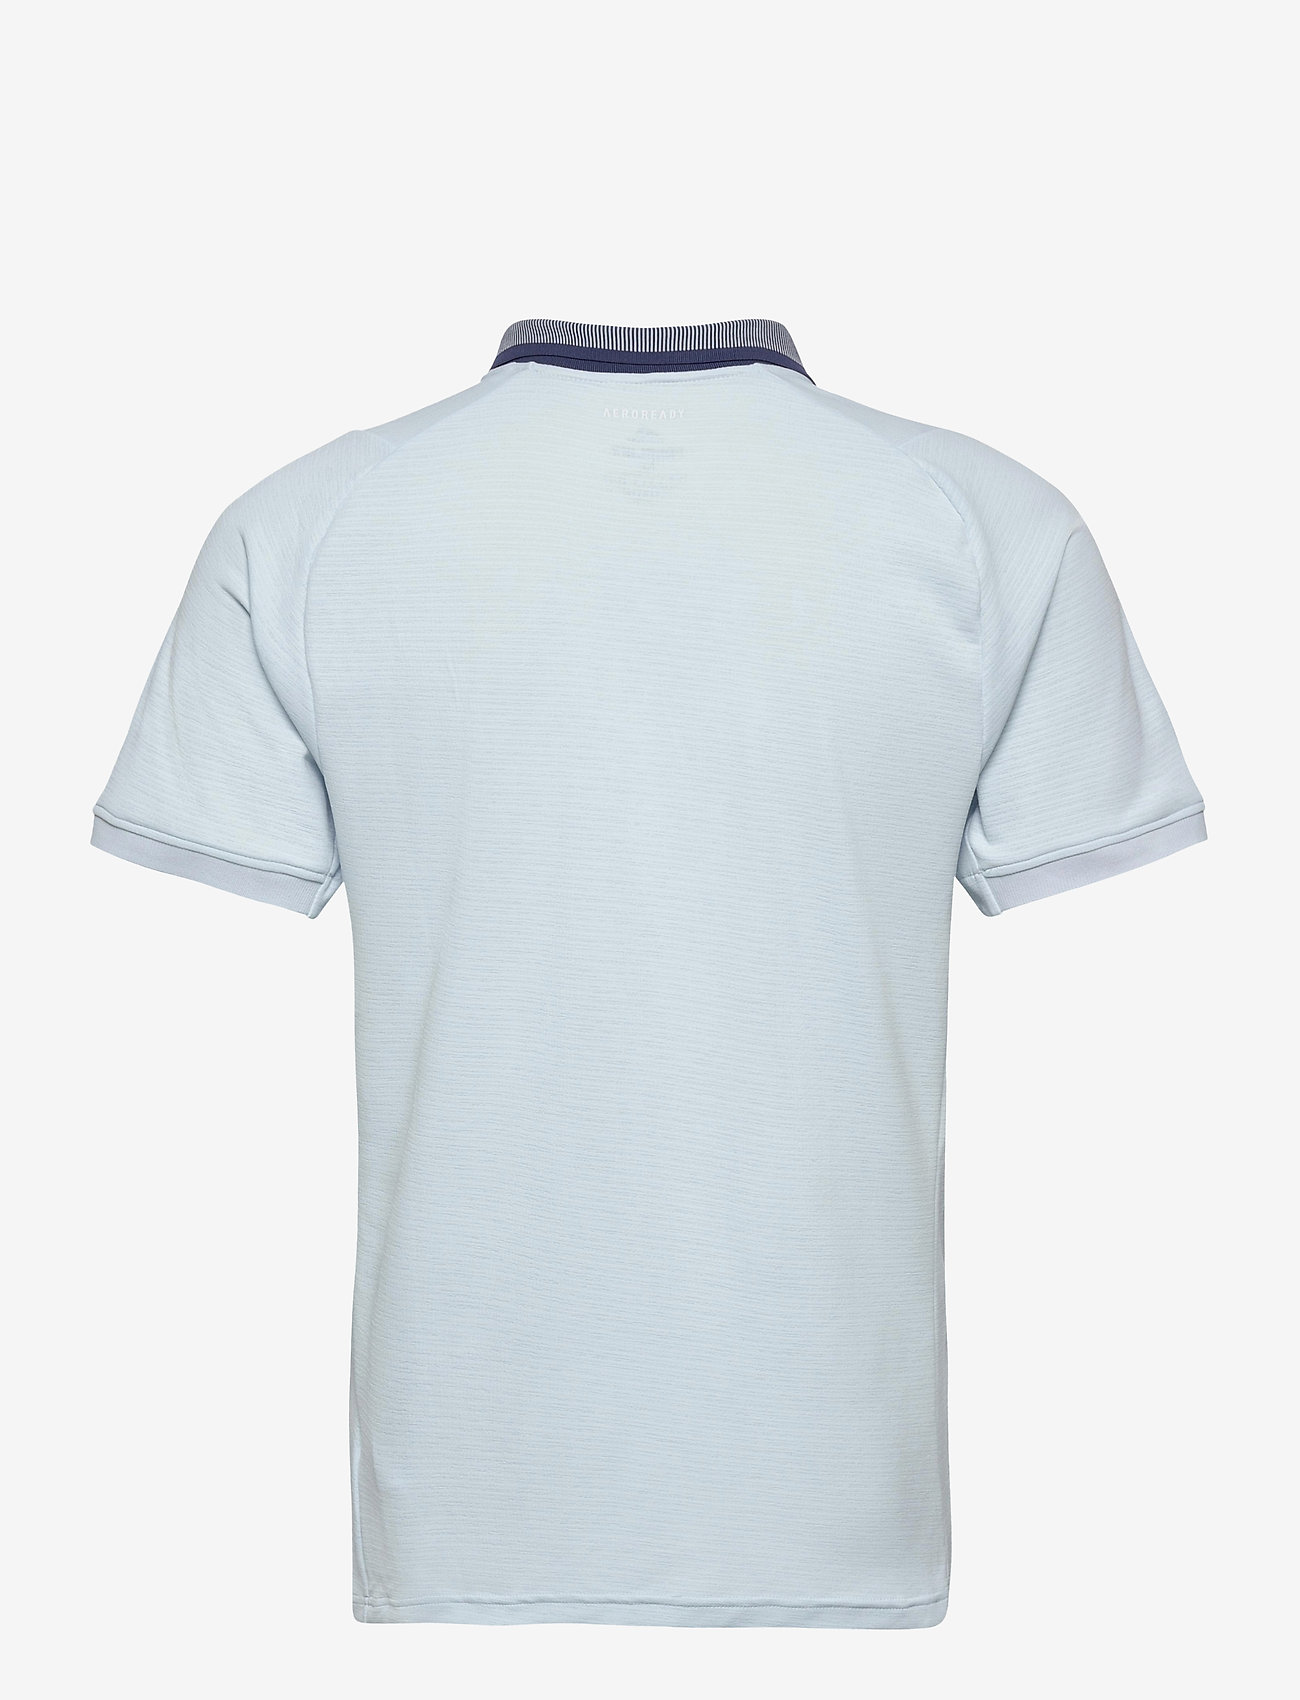 adidas Performance - FREELIFT TENNIS POLO SHIRT AEROREADY - paidat - light blue - 1